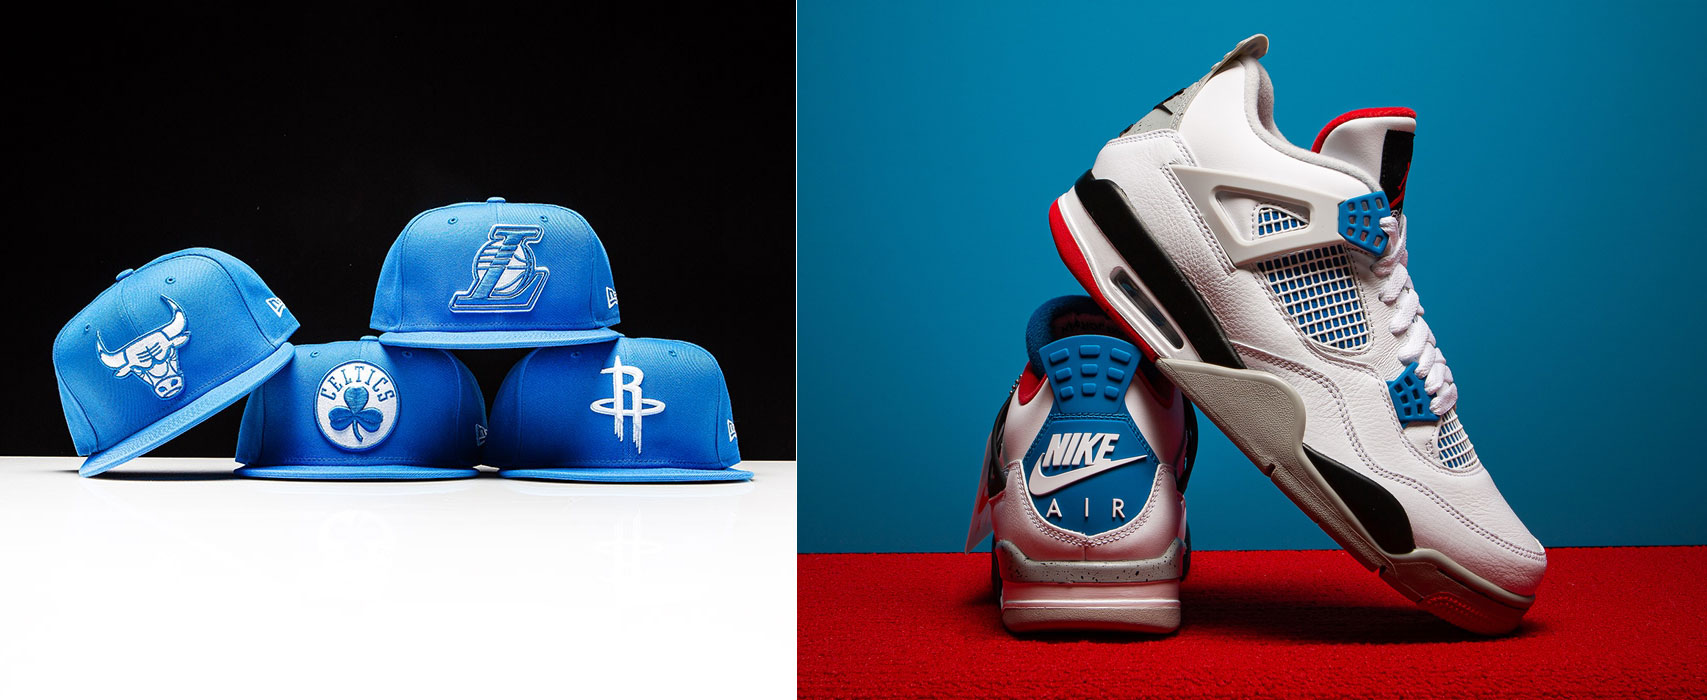 jordan-4-what-the-new-era-nba-snapback-caps-match